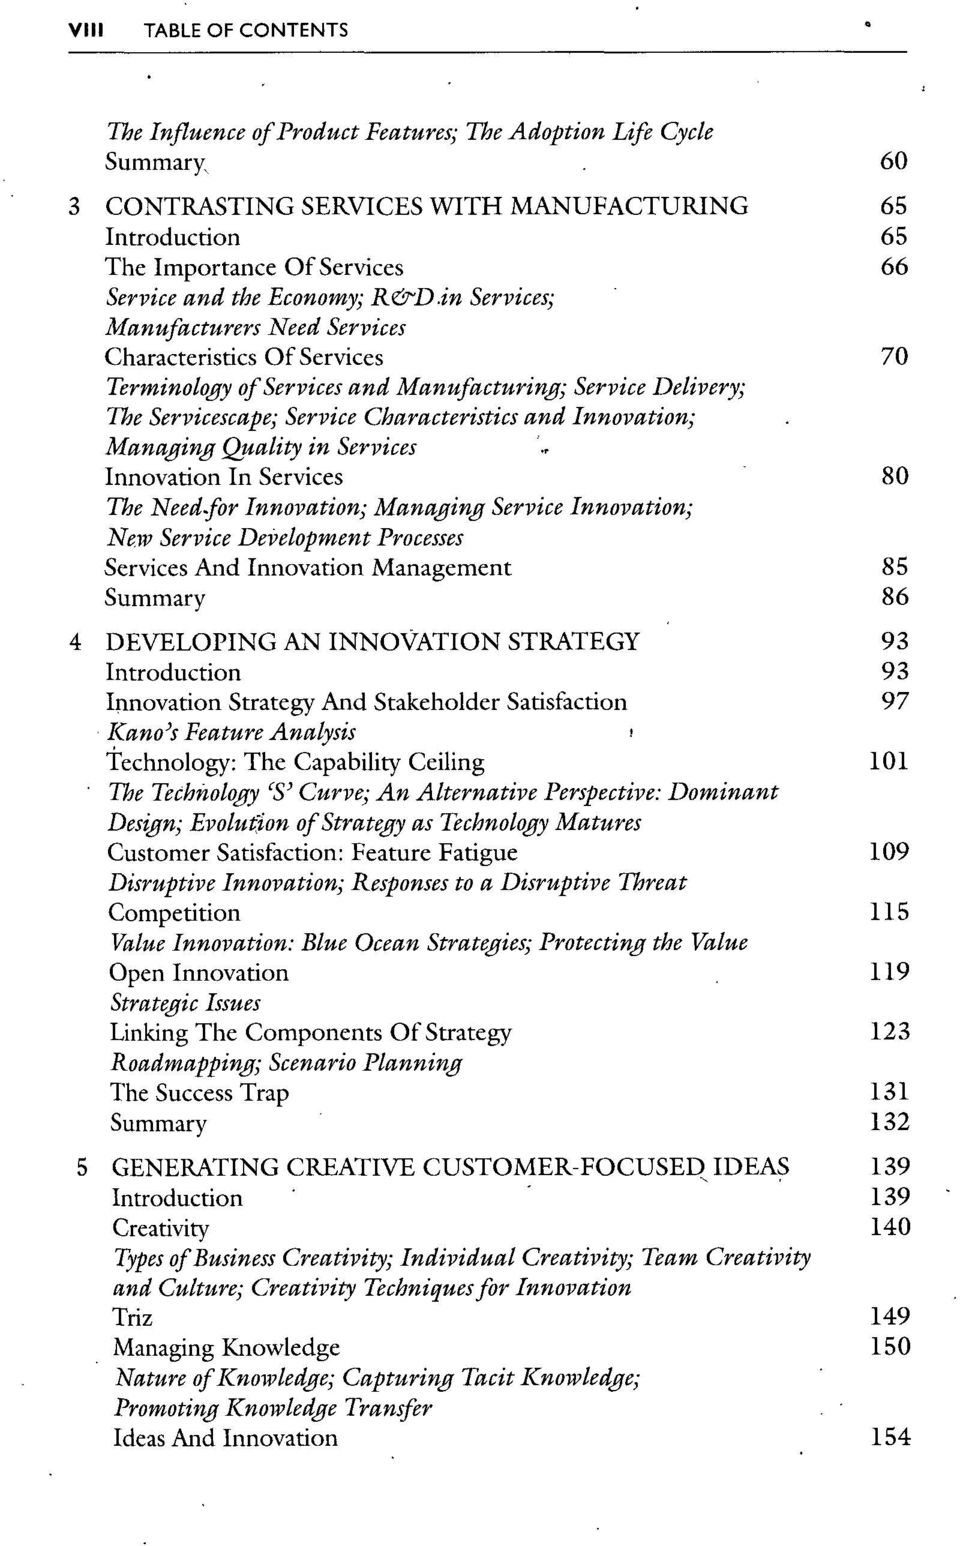 in Services; Manufacturers Need Services Characteristics Of Services 70 Terminology of Services and Manufacturing; Service Delivery; The Servicescape; Service Characteristics and Innovation; Managing